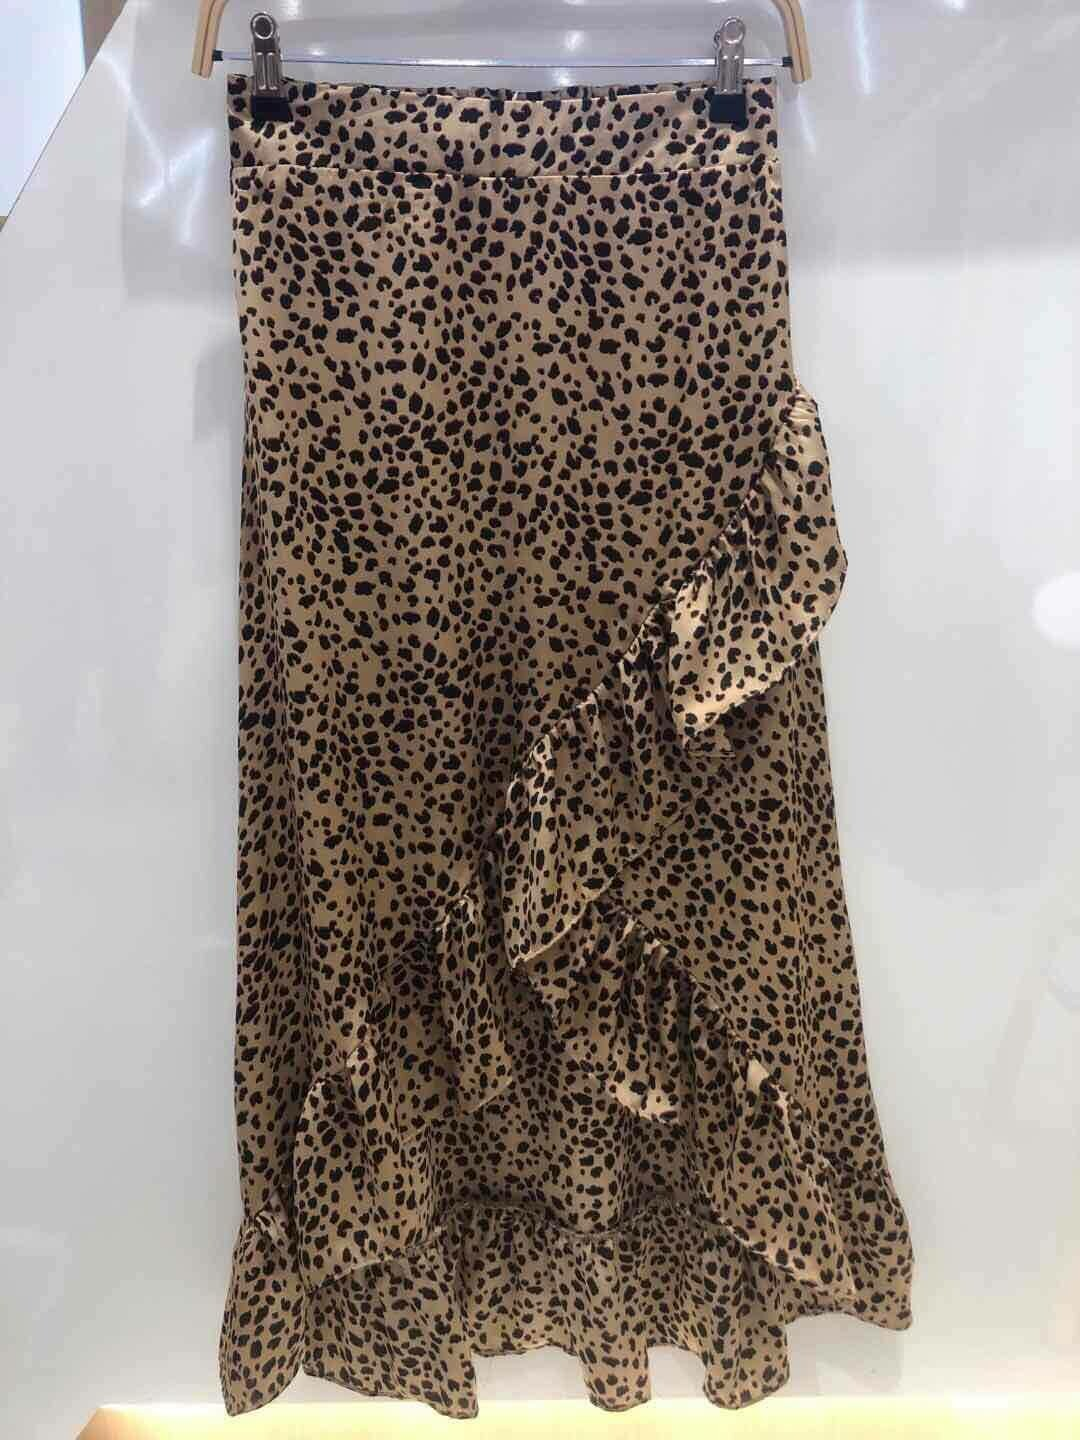 'Animal Print Skirt' with Frill in Golden Beige